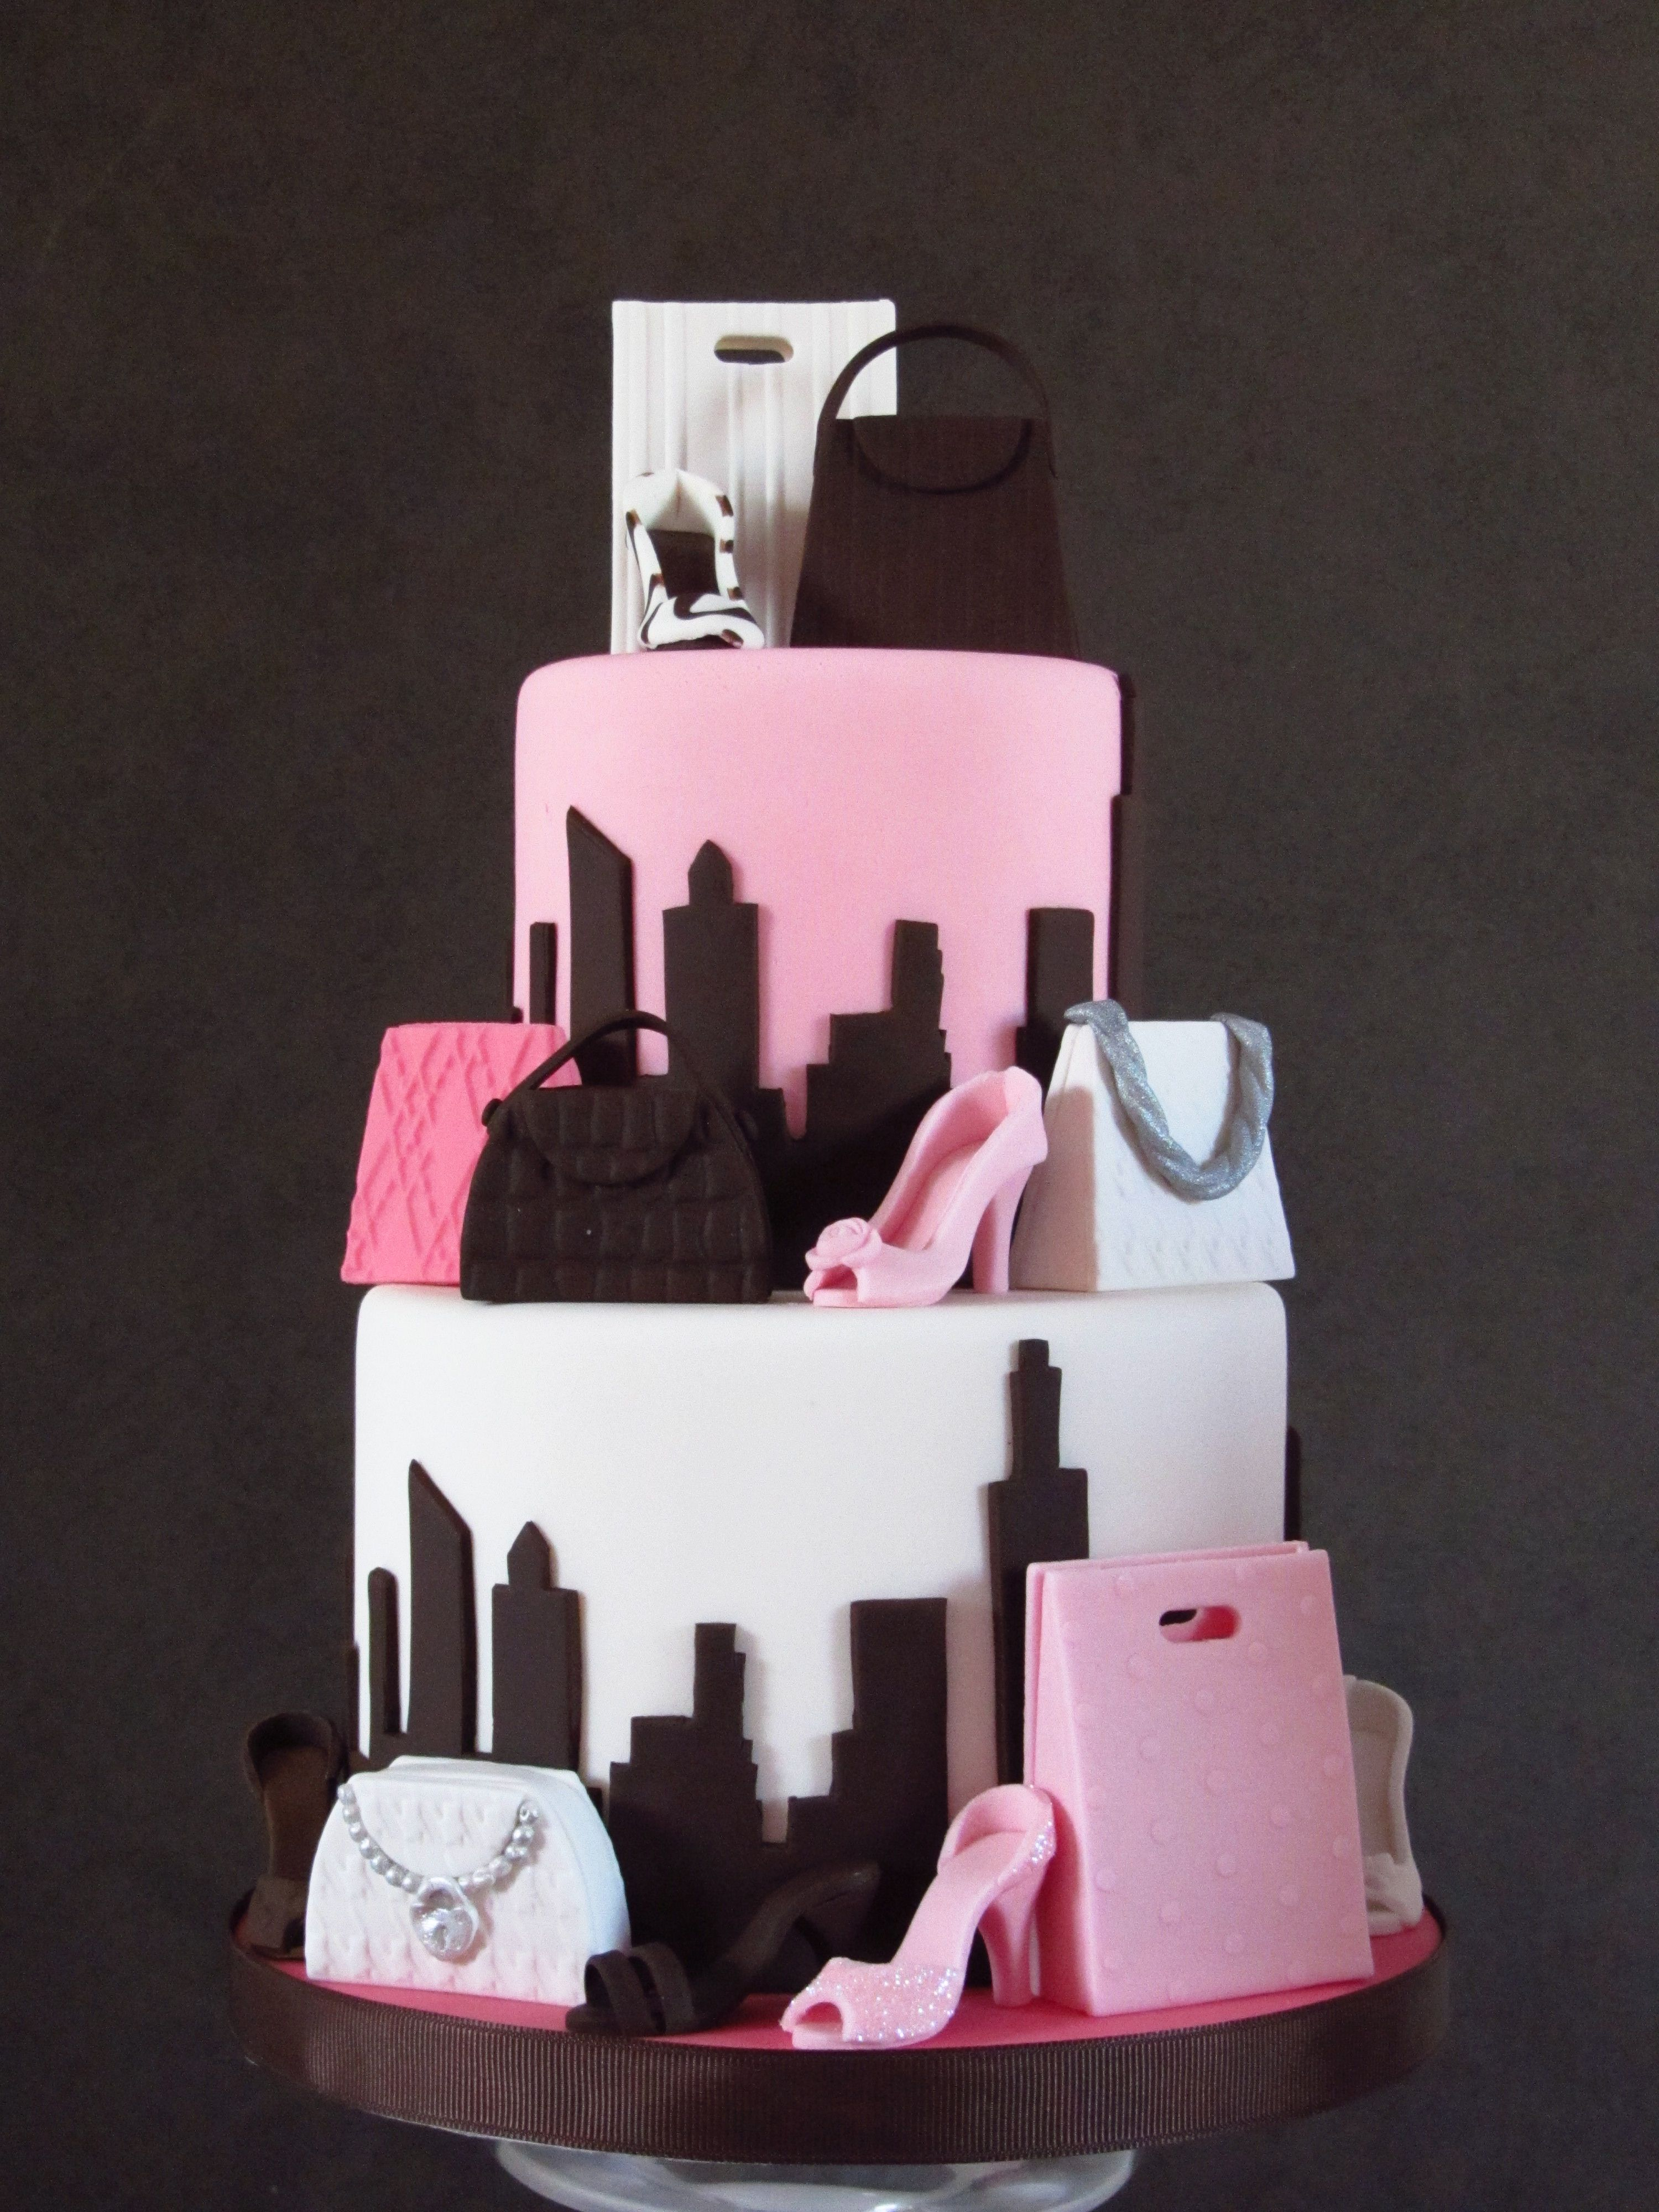 34+ Amazing Picture of Fashion Birthday Cake